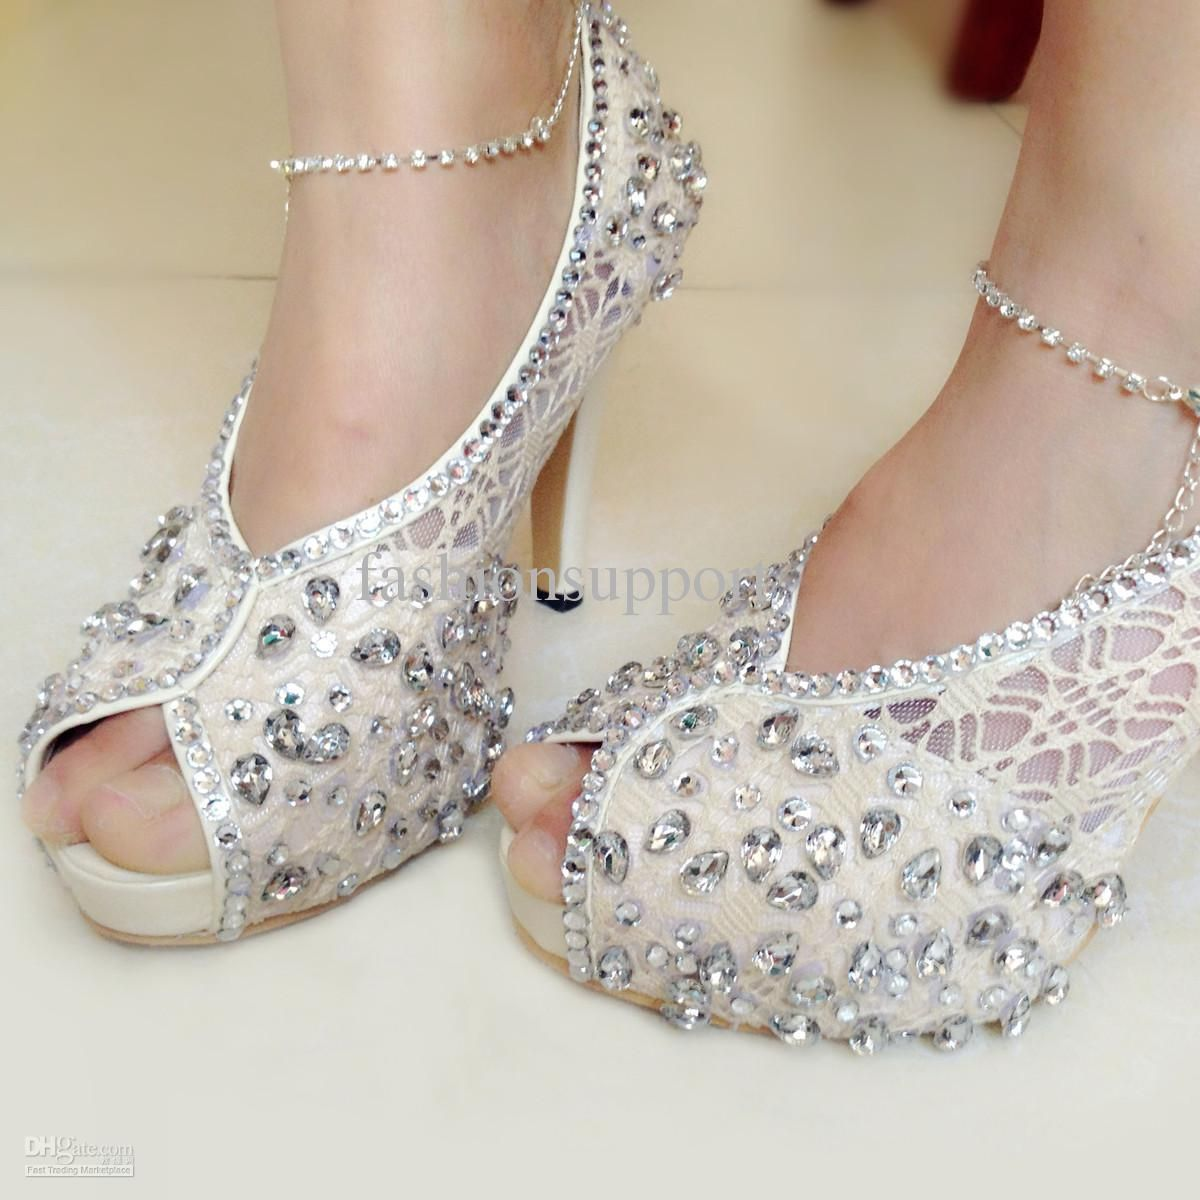 Princess Crystal Nude Colour Lace High Heels Peep Toe Wedding Shoes